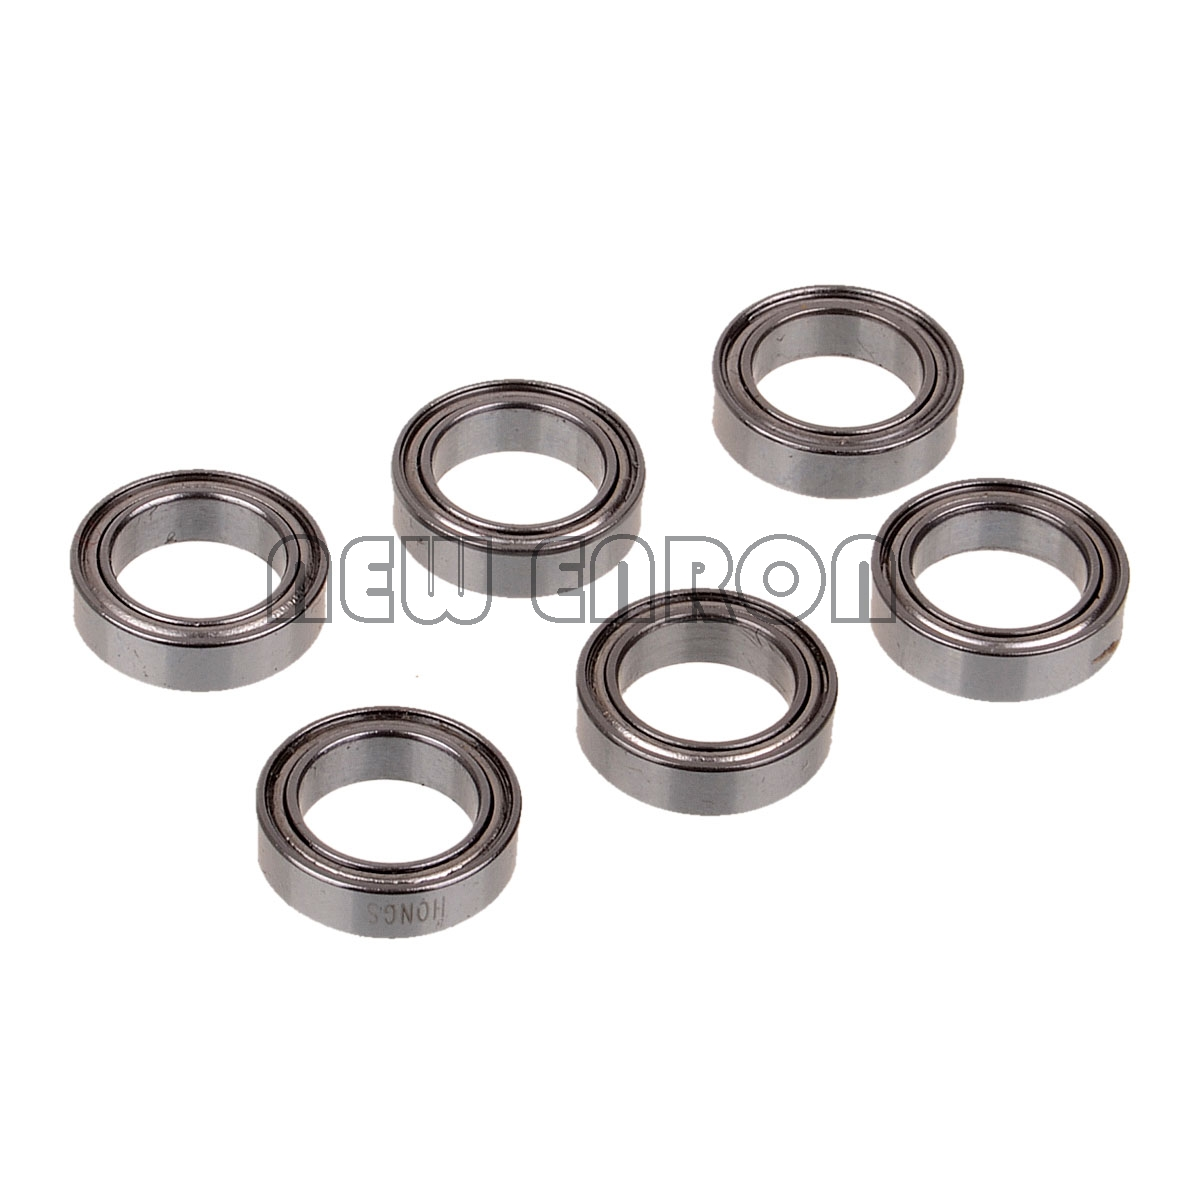 NEW ENRON 02138 6P Ball Bearing  15* 10*4 Racing 1/10 4WD On/Off-Road Car Monster Truck